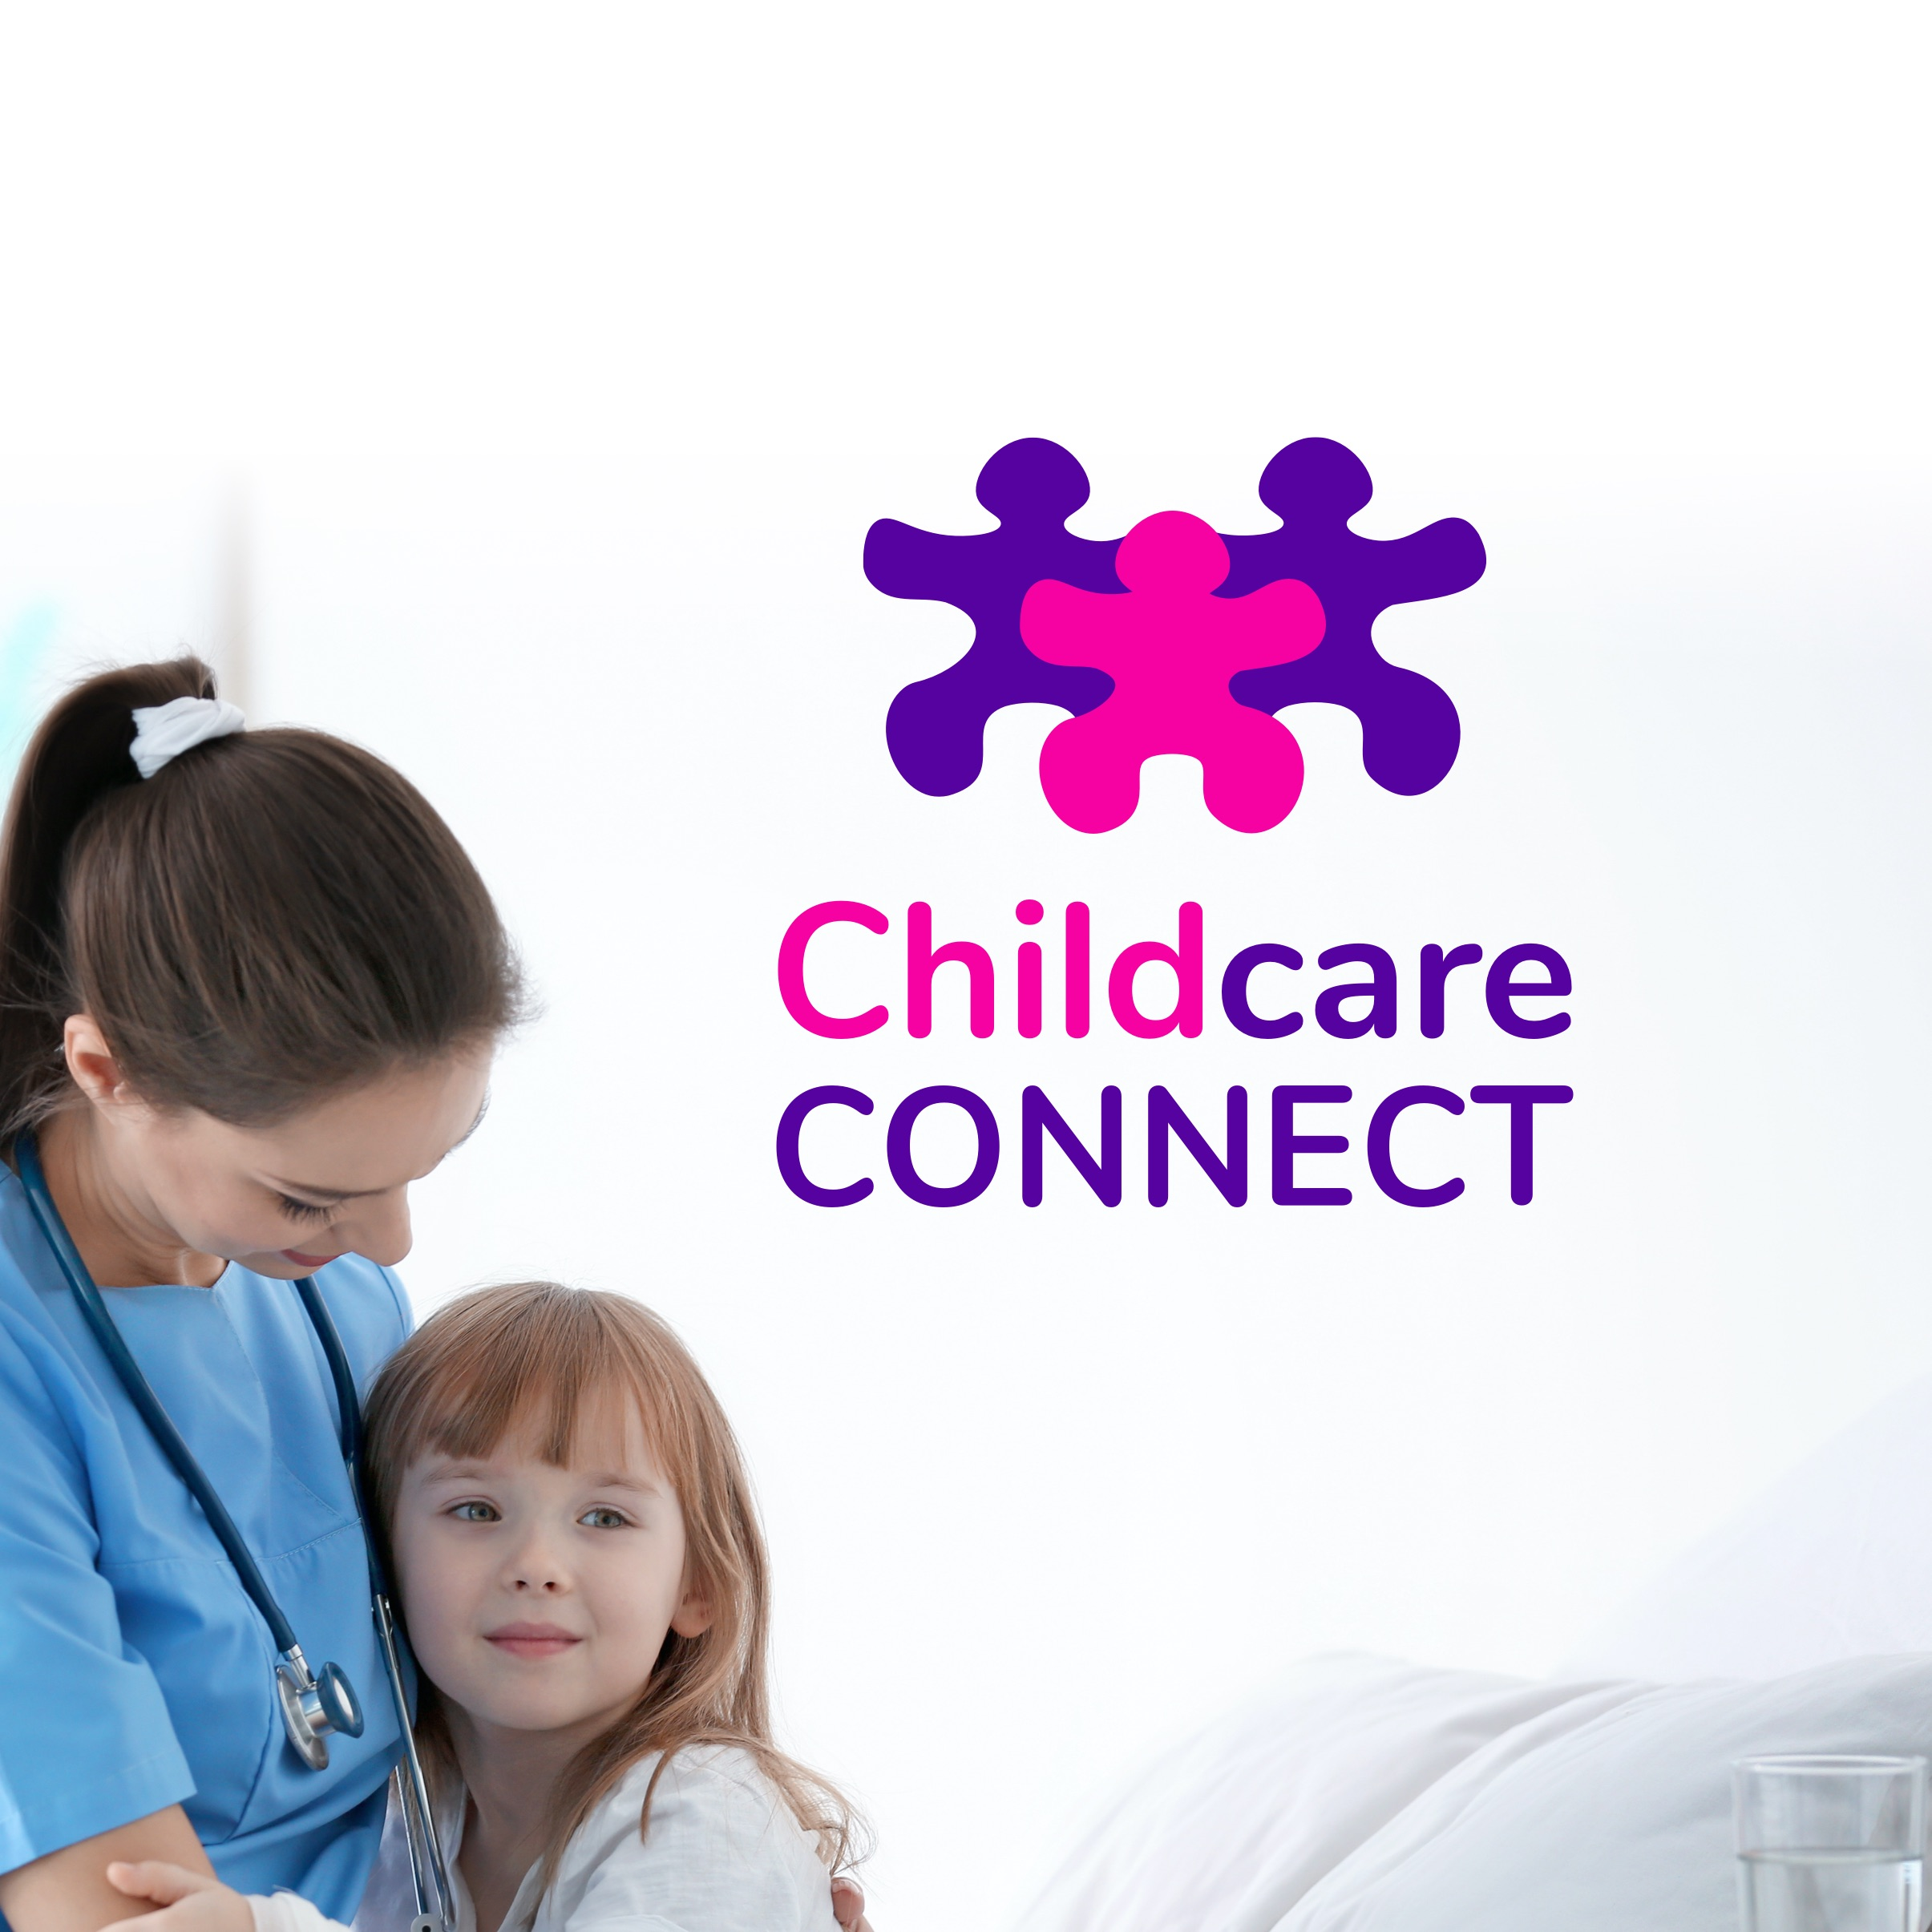 Childcare Connect Logo by Casper Creative